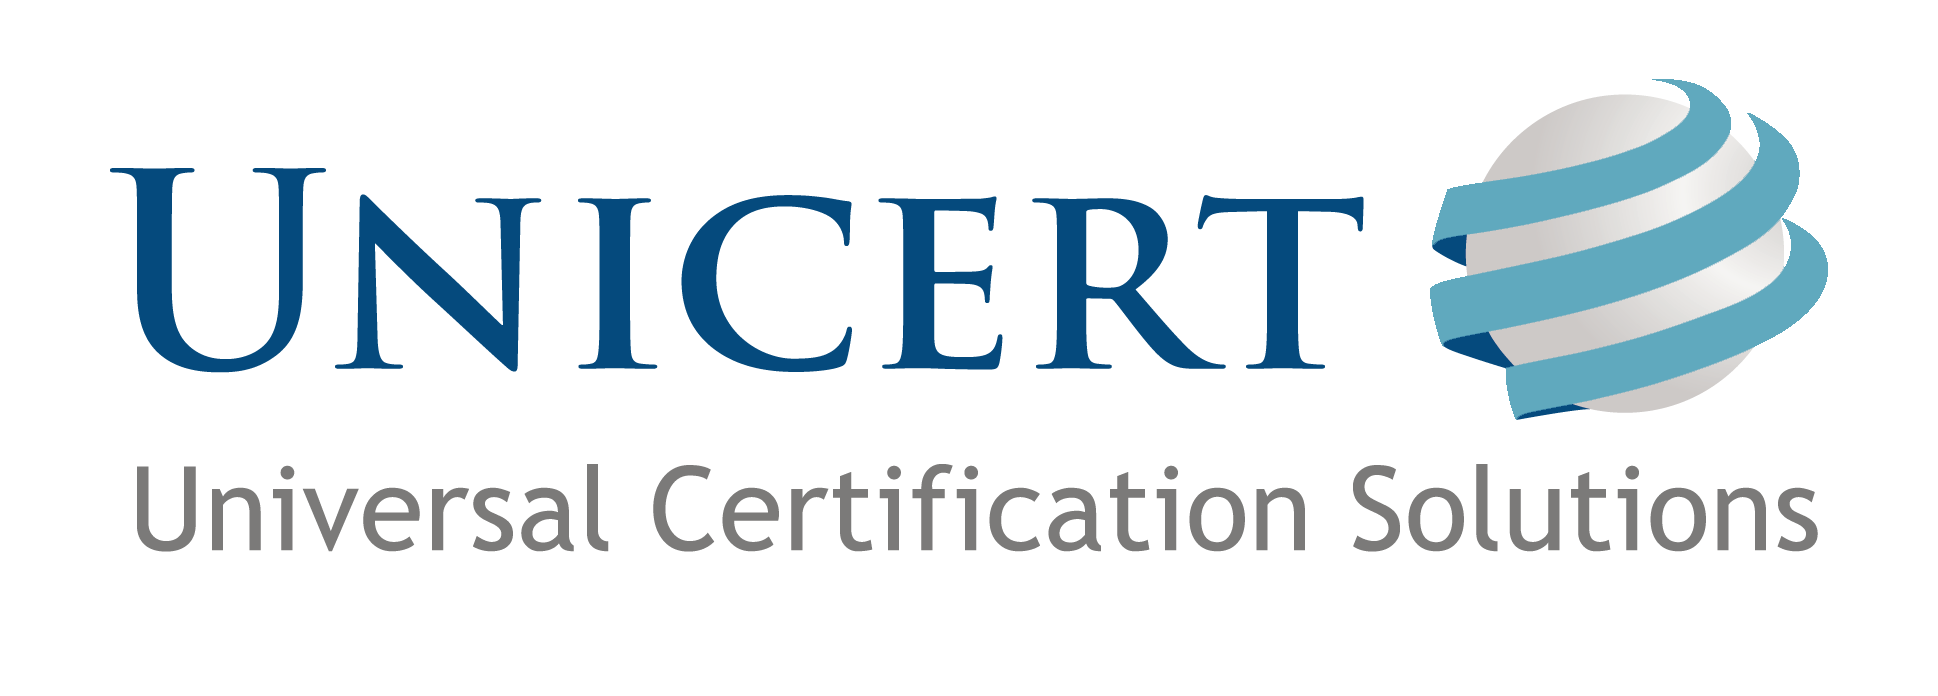 Unicert, Universal Certification Solutions